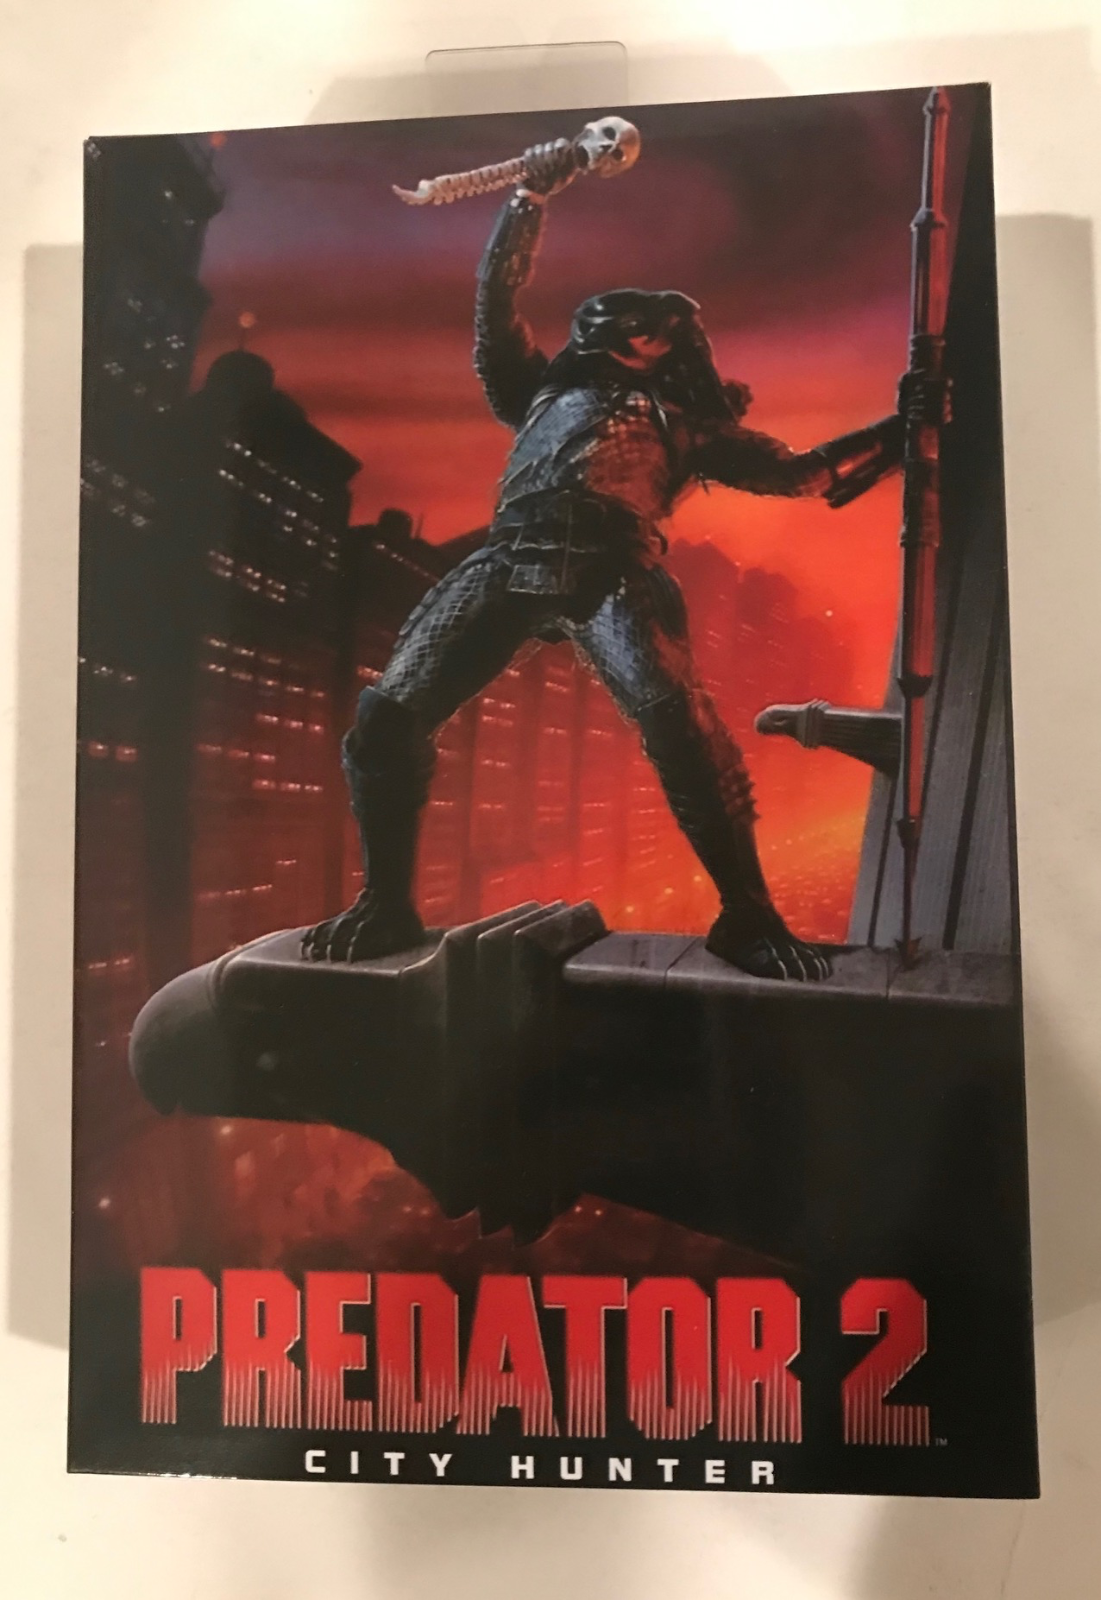 "NECA Prossoator 2 Movie Ultimate città Hunter 7"" azione cifra  HTF"